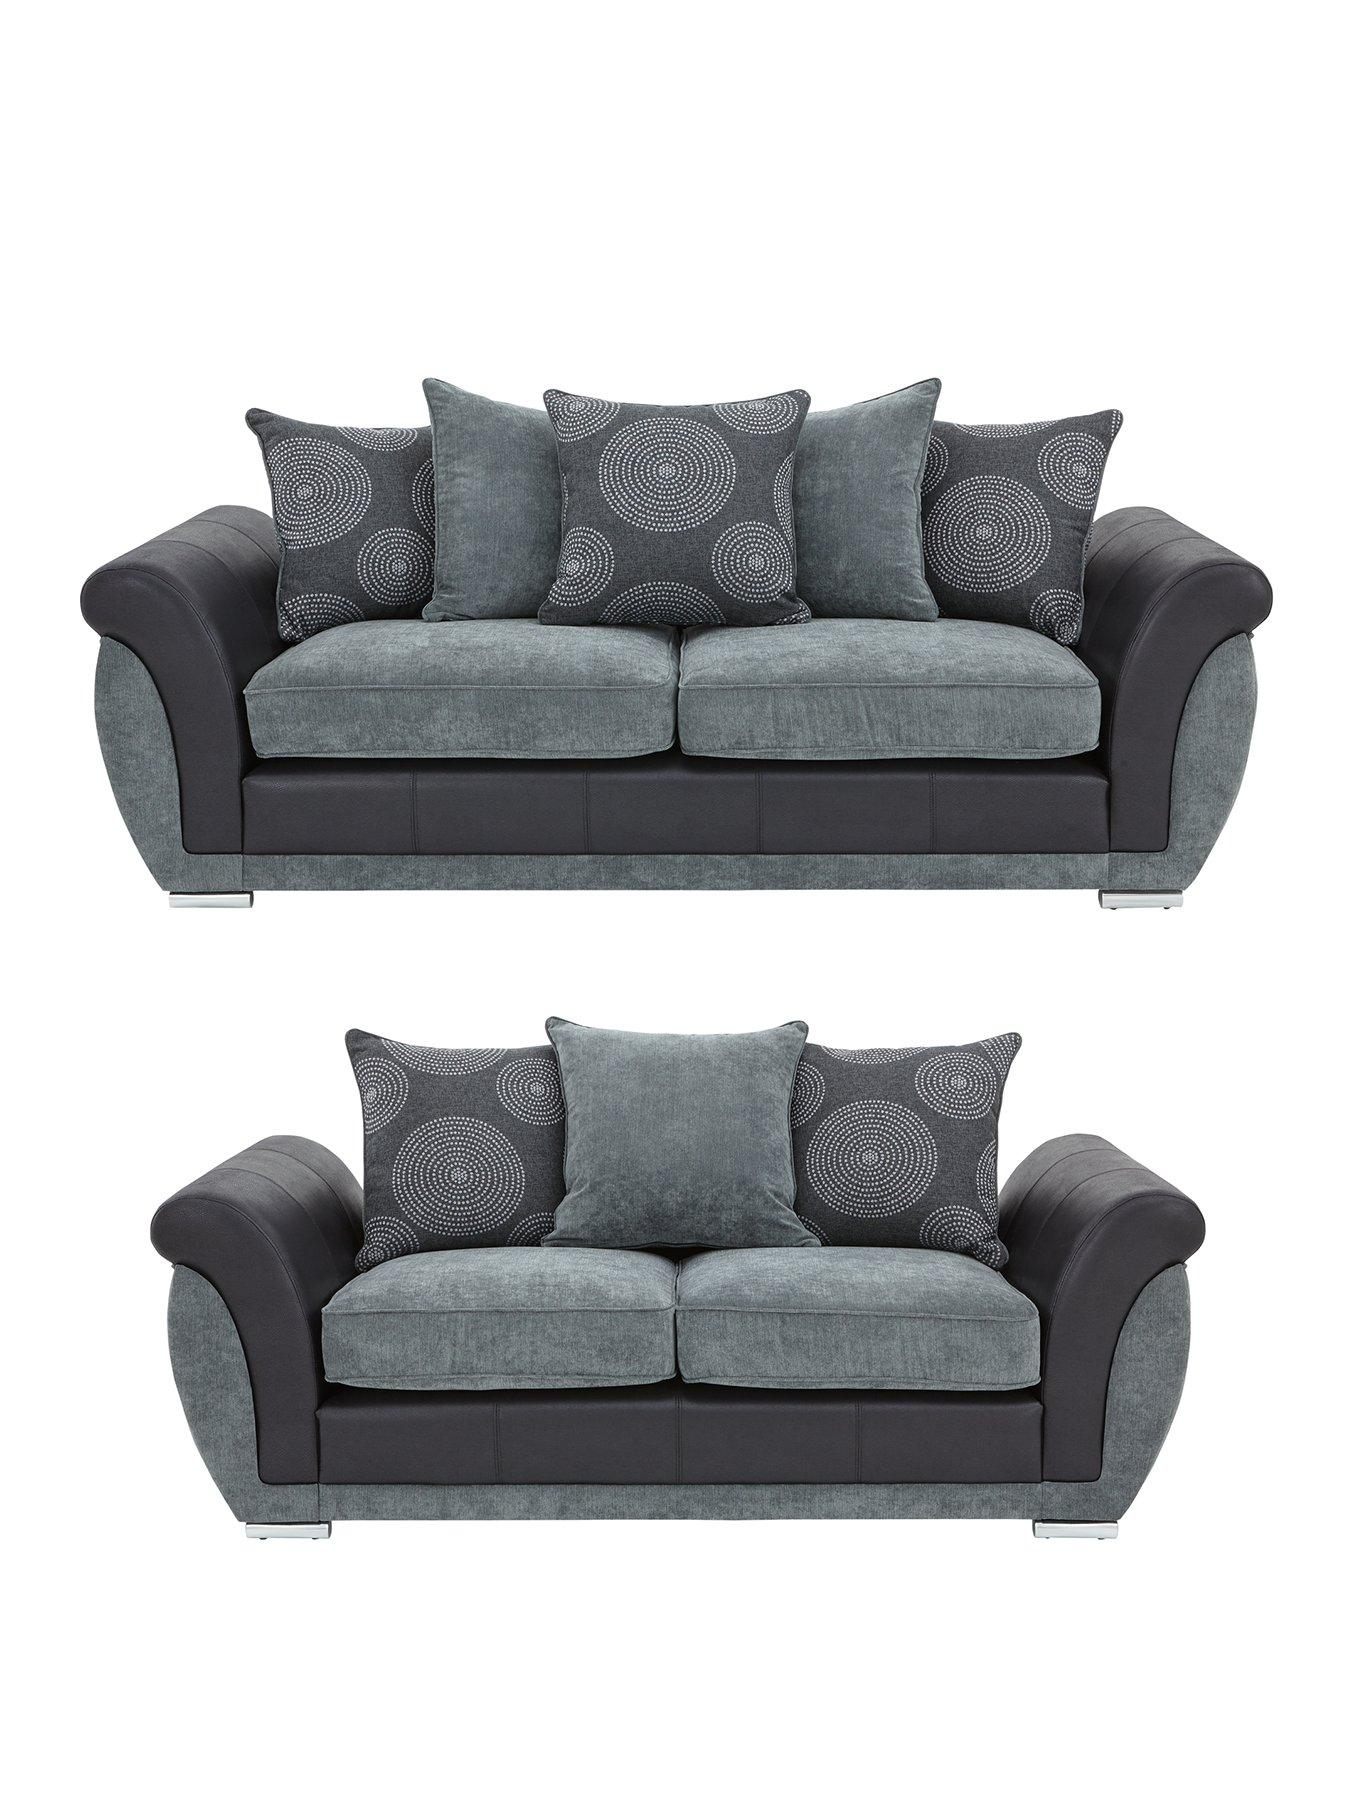 buy sofa uk how to clean sweat stains from leather danube 3 seater 2 set and save very co